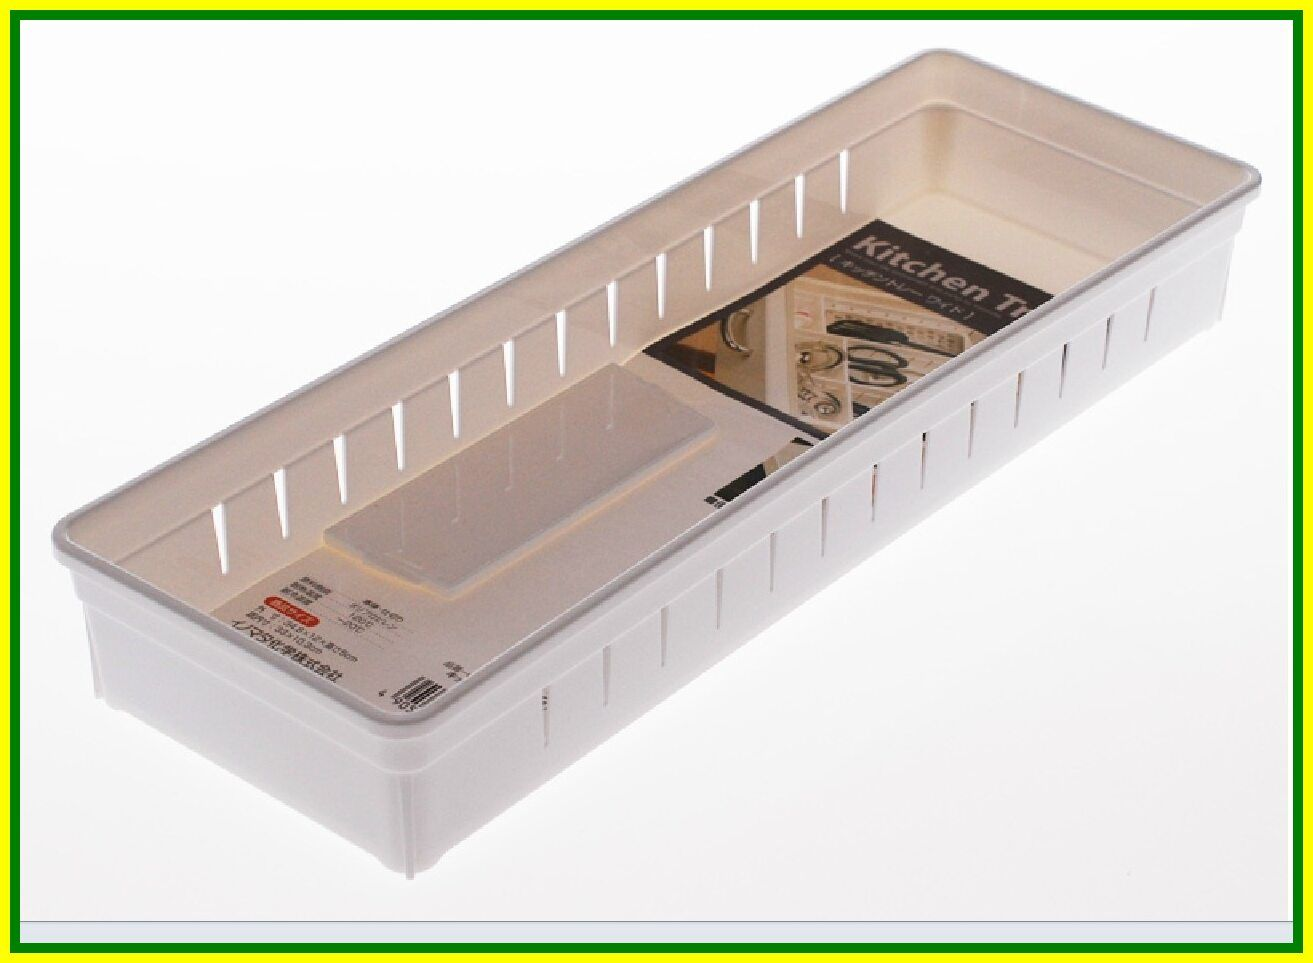 63 Reference Of White Plastic Drawer Dividers In 2020 Kitchen Drawer Storage Plastic Drawer Organizer Kitchen Drawer Organization